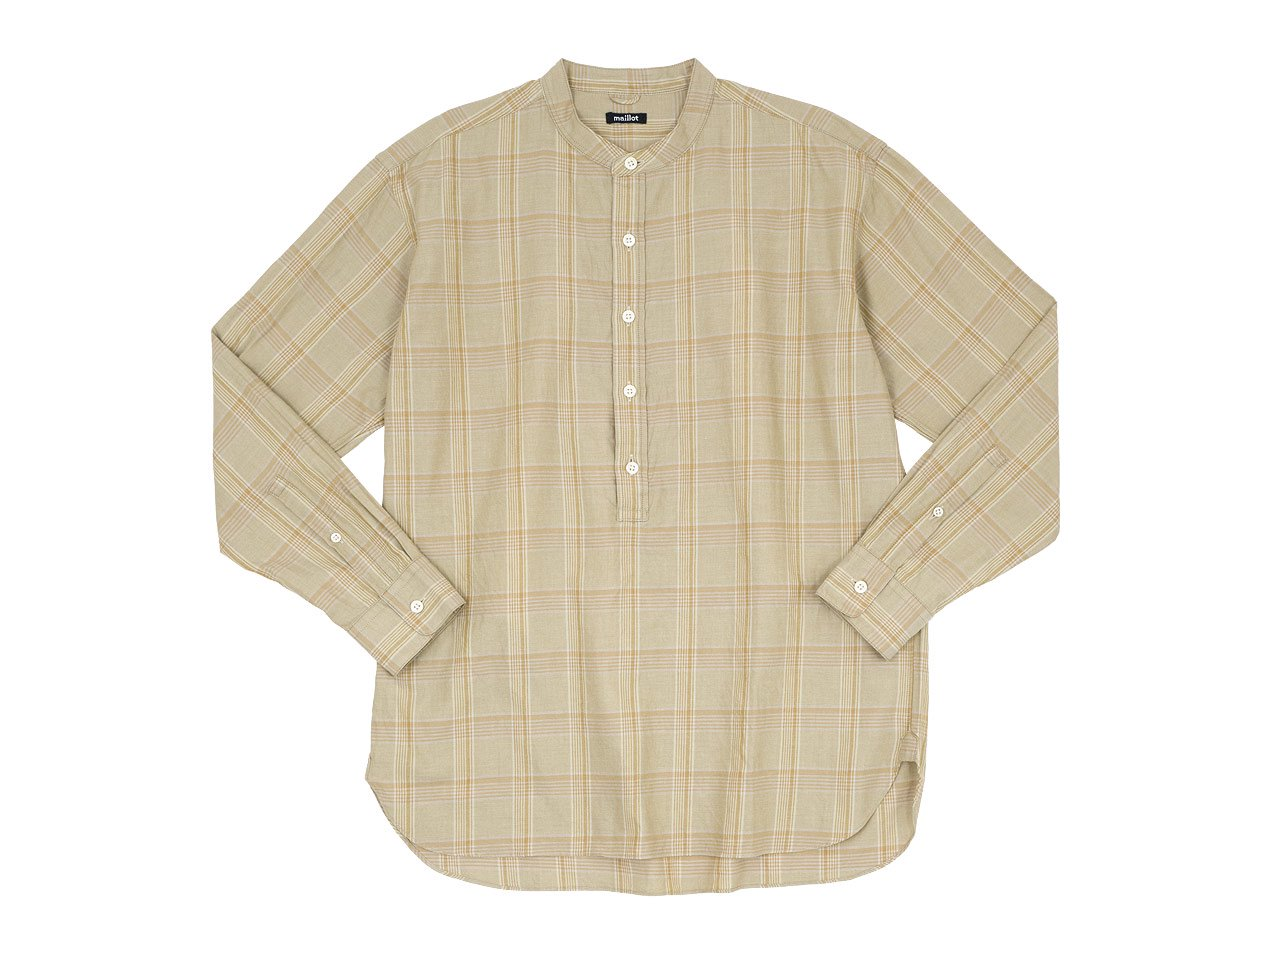 maillot mature twill check pull over stand shirts BEIGE